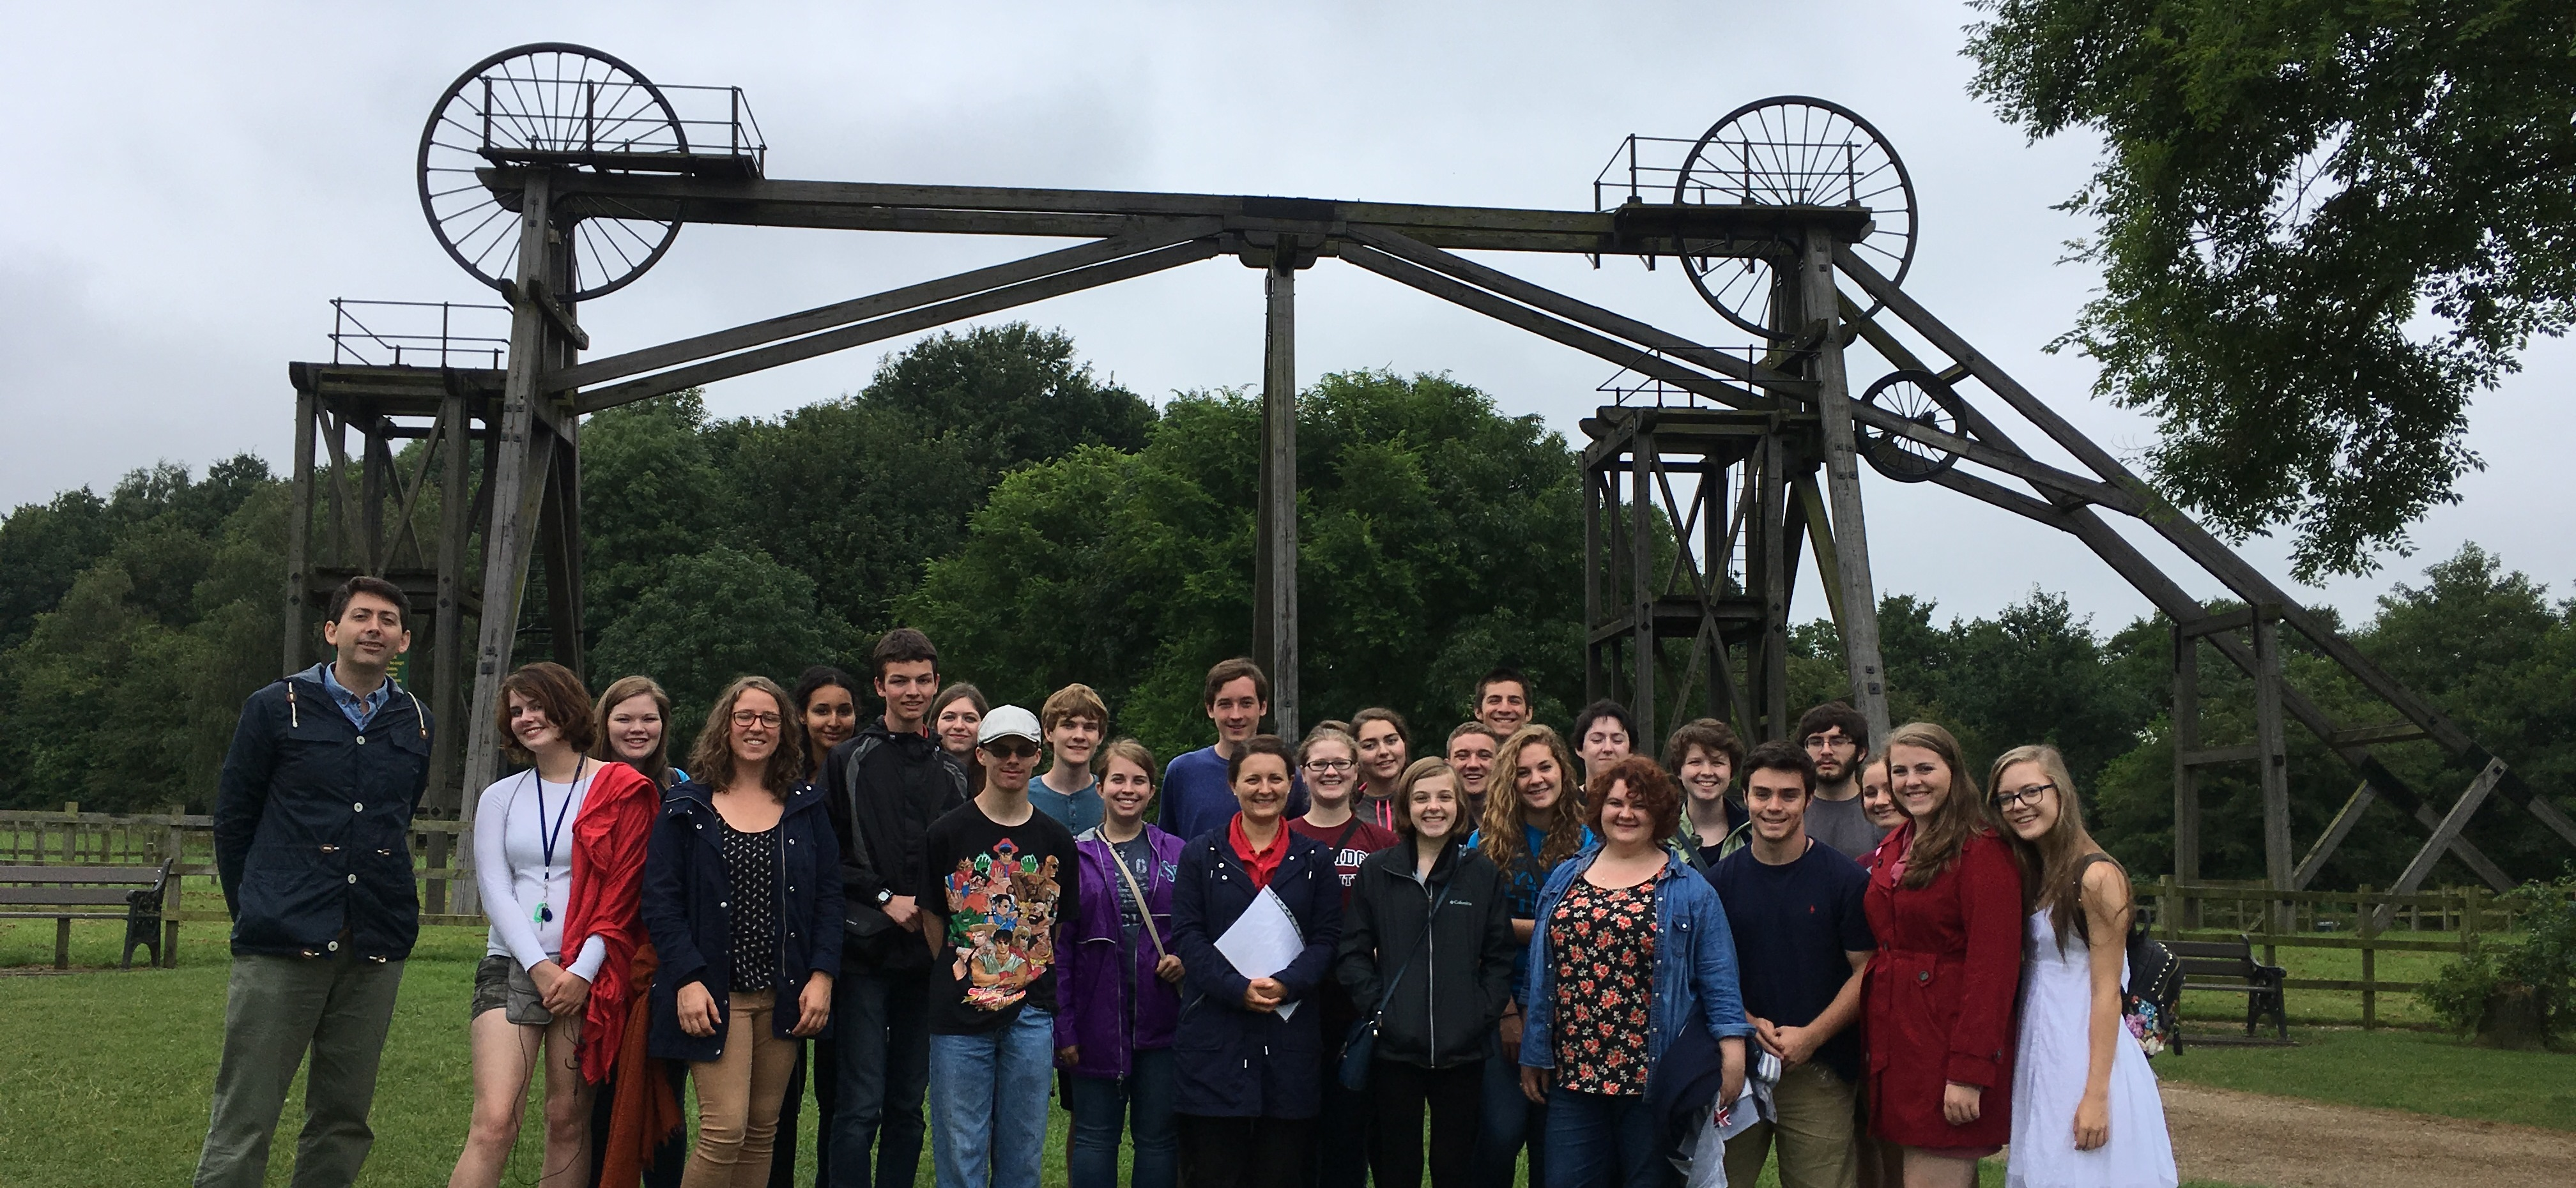 School trip to Brinsley Headstocks